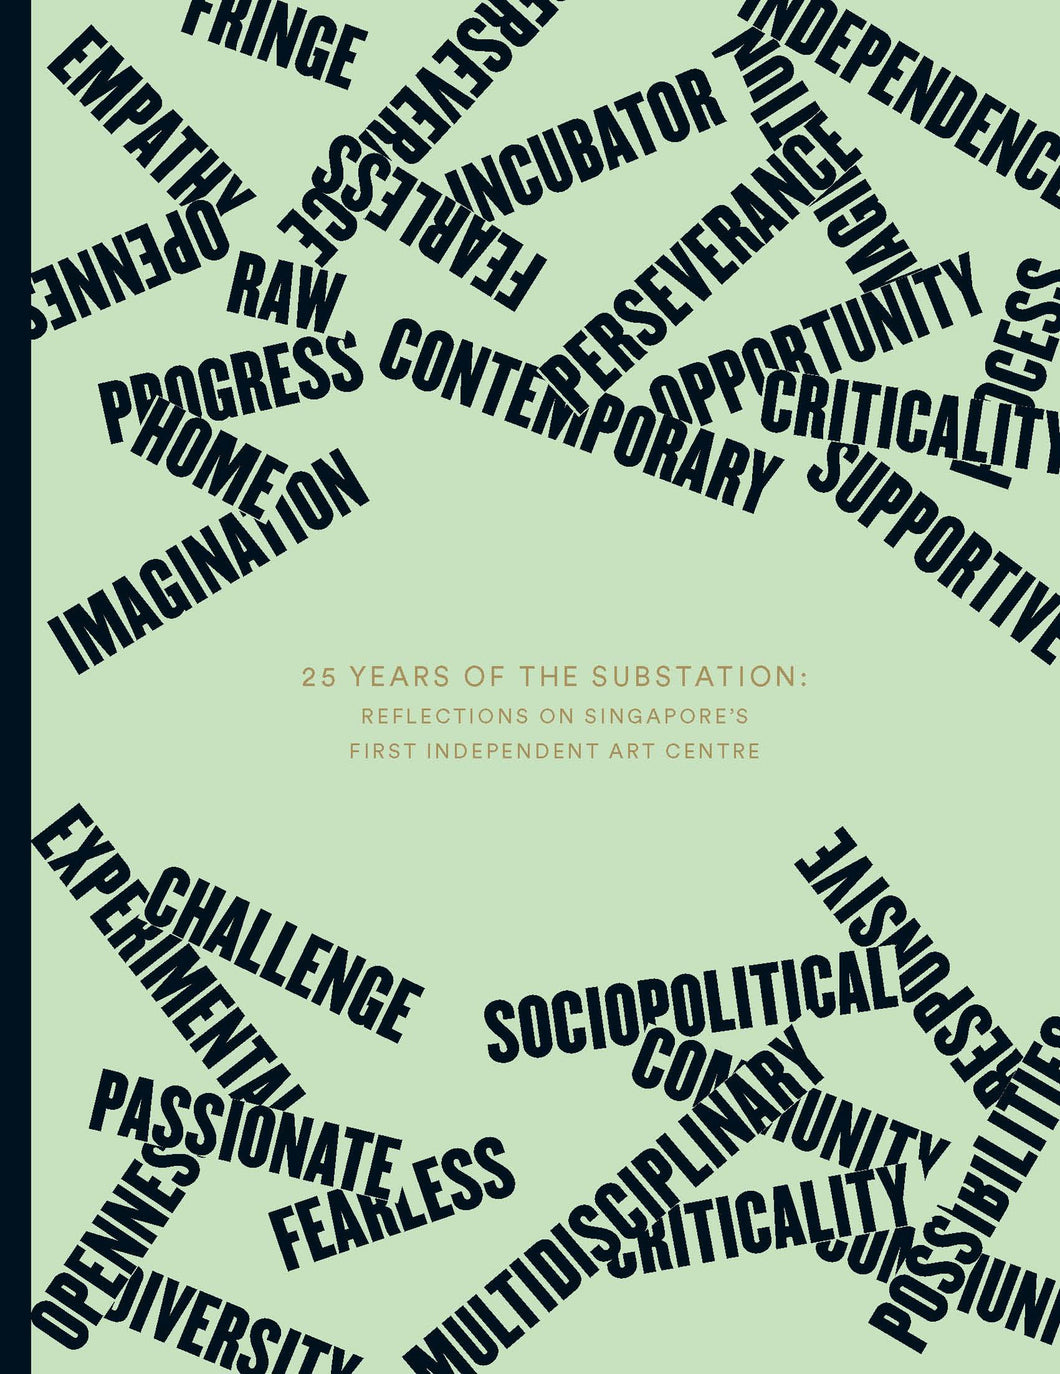 25 Years of The Substation: Reflections on Singapore's First Independent Art Centre - Ethos Books